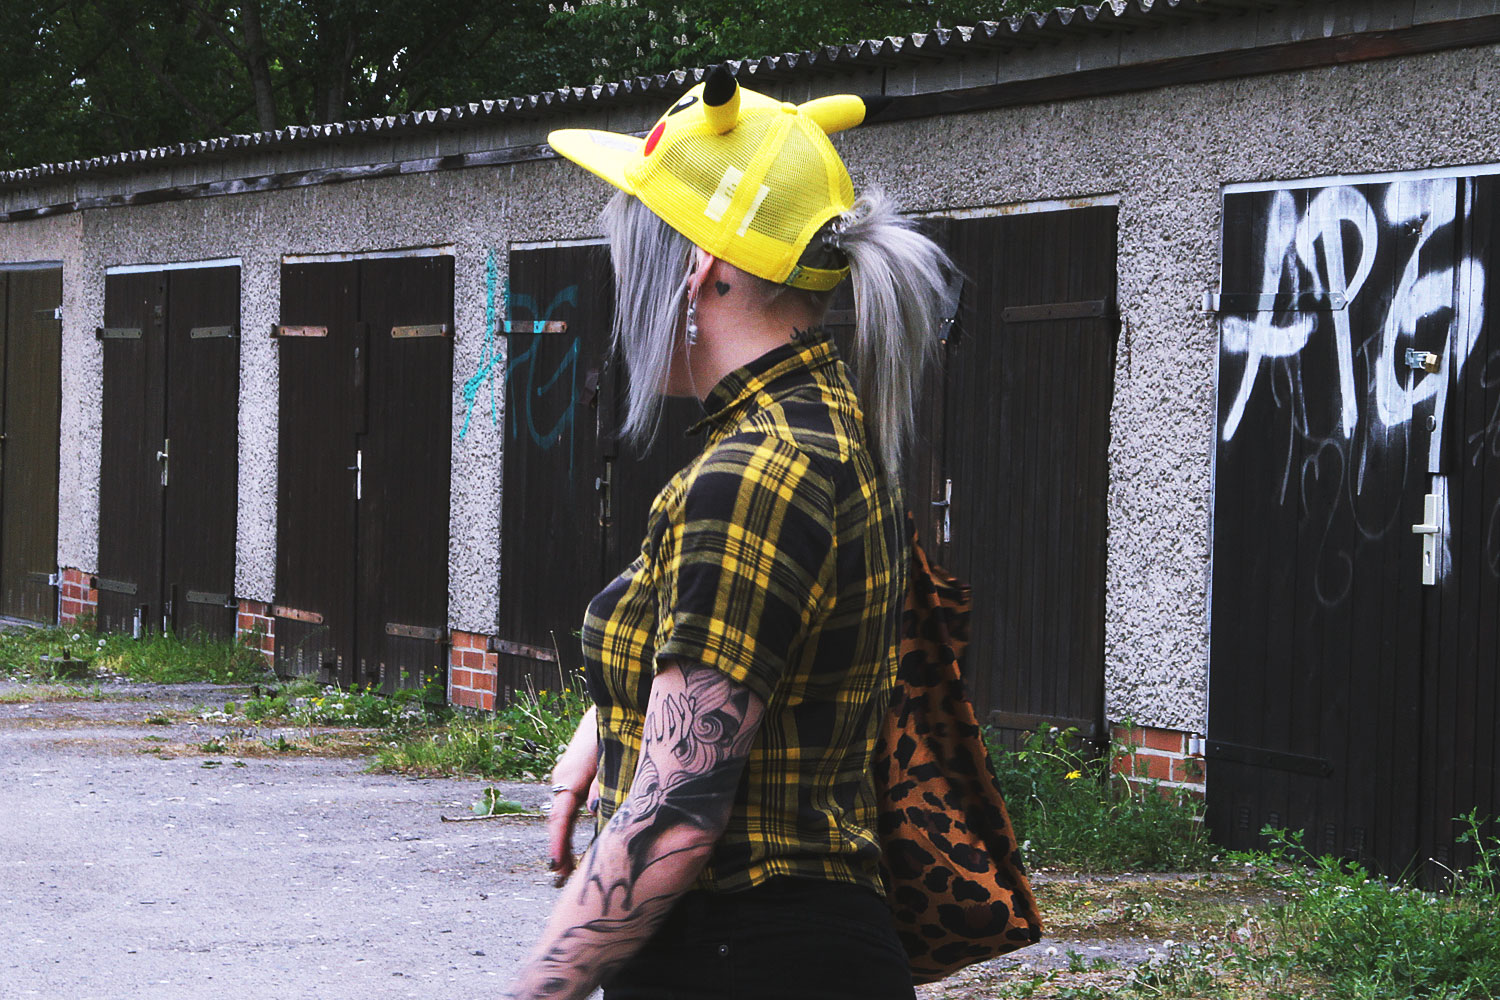 alternative, alternative fashion, alternative girl, alternative mode, altgirl, berlin, berlin fashion, berlin fashion blogger, berlin mode, berlin streetstyle, blogger, fashion blogger, girls with piercings, girls with tattoos, grunge, grunge fashion, grunge mode, mode, Punk, punk fashion, punk mode, punkgirl, punkmädchen, scenehair, snakebites, split hair, splithair, tattoomädchen, tattoomodel, pikachu, cap, pokemon, karohemd, karos, asos, rock, usedlook, used, destroyed, h&m, netzstrumpfhose, vans, leo, leopard, leomuster